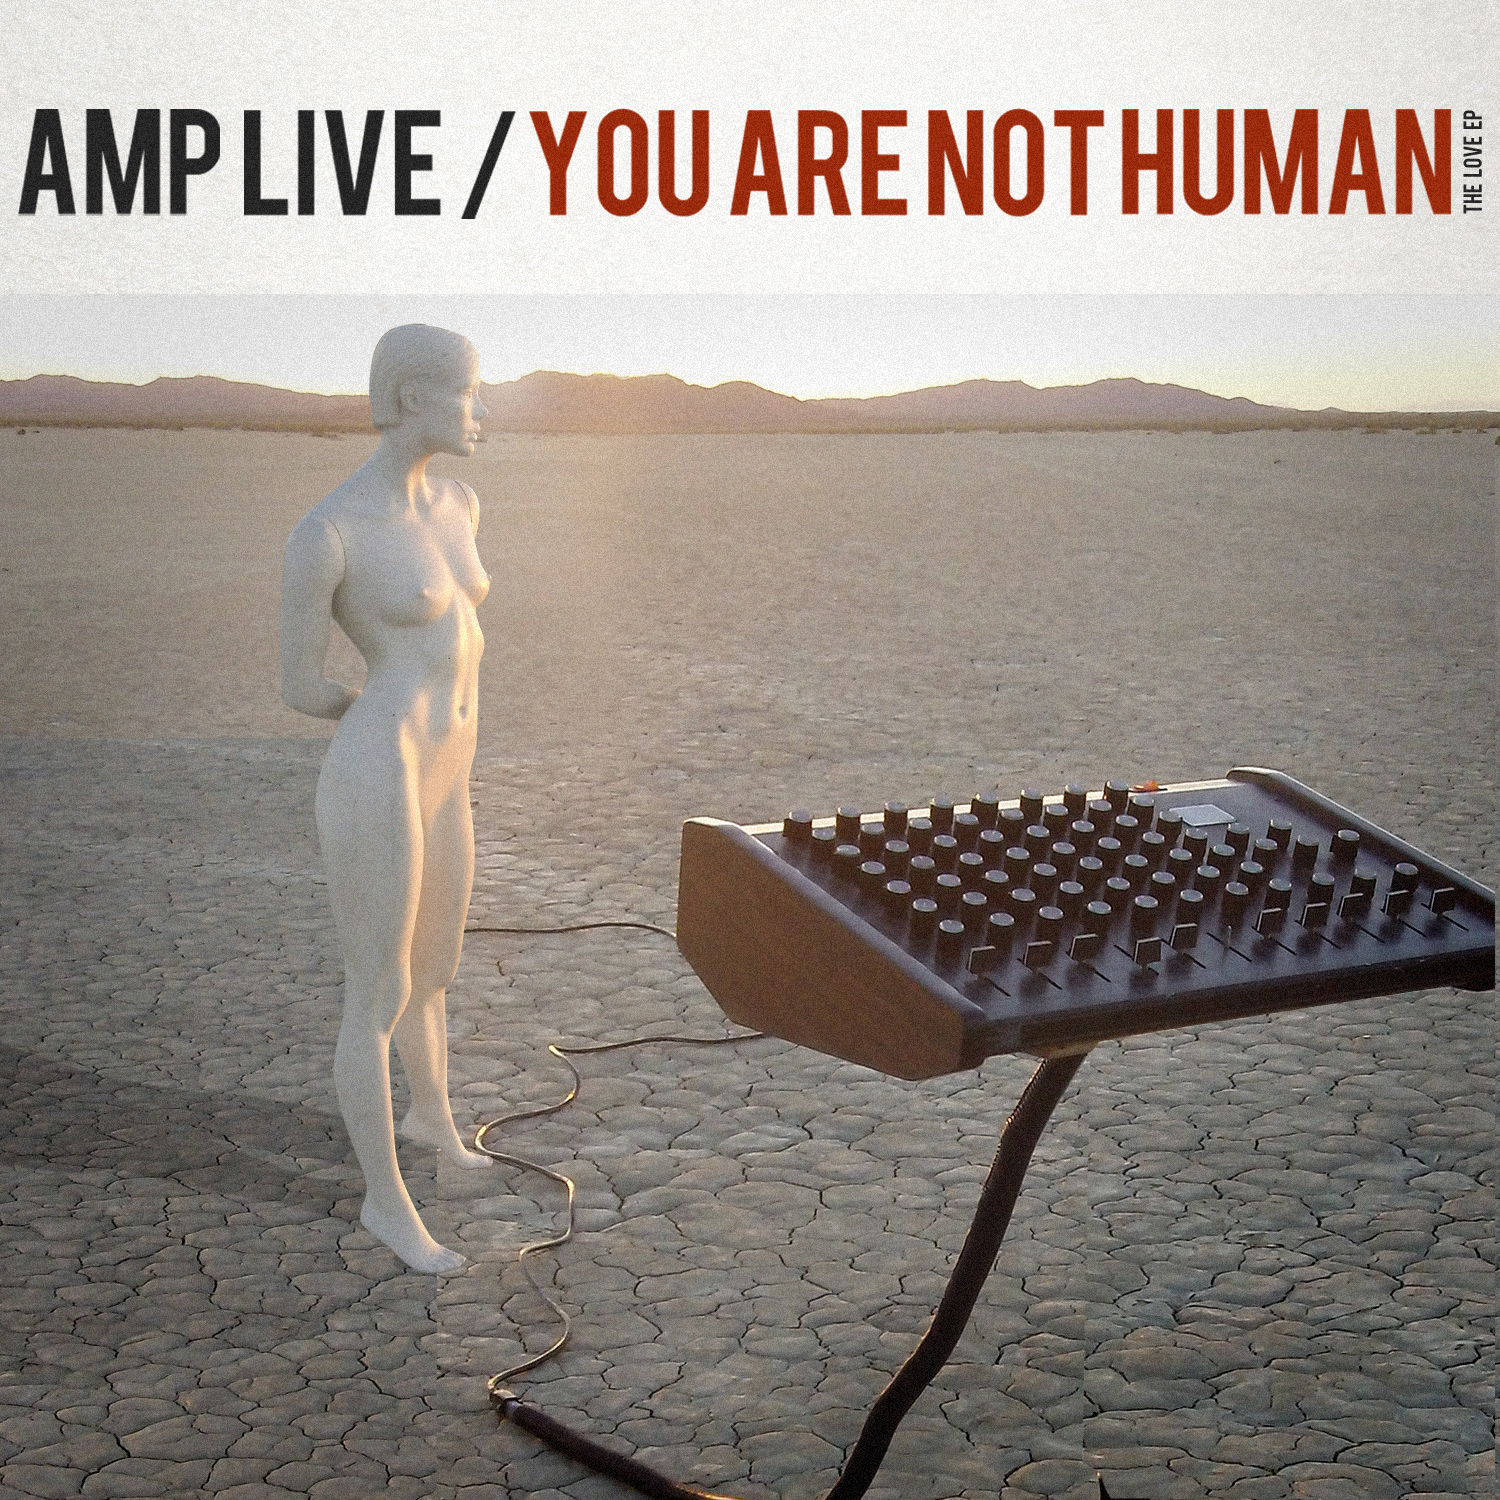 Free Download: Amp Live (Zion I) – You Are Not Human (The Love EP)